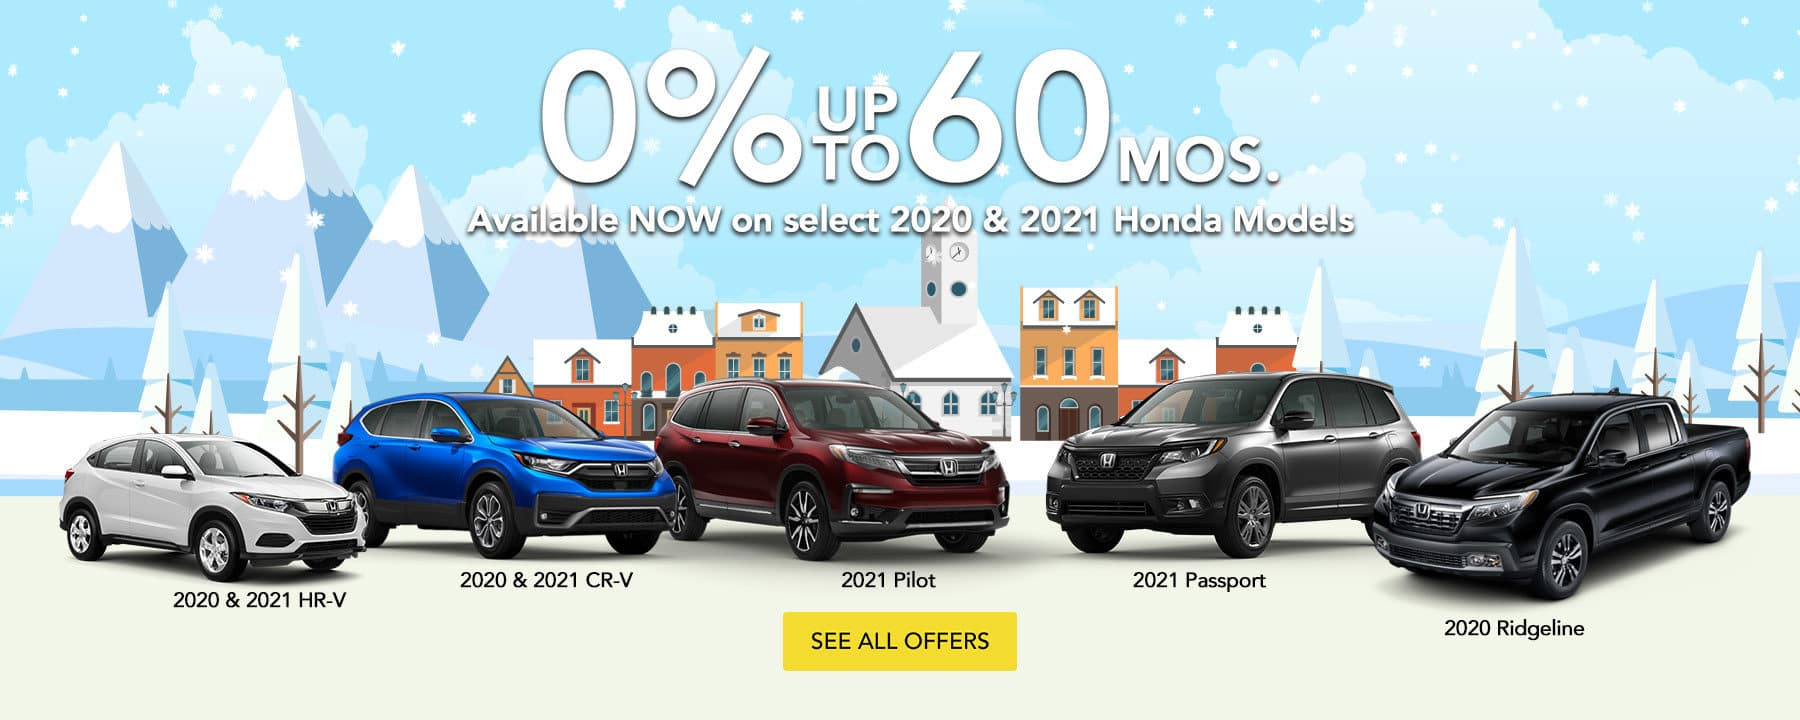 Zero percent up to 60 months on select 2020 and 2021 Honda models. See all offers.